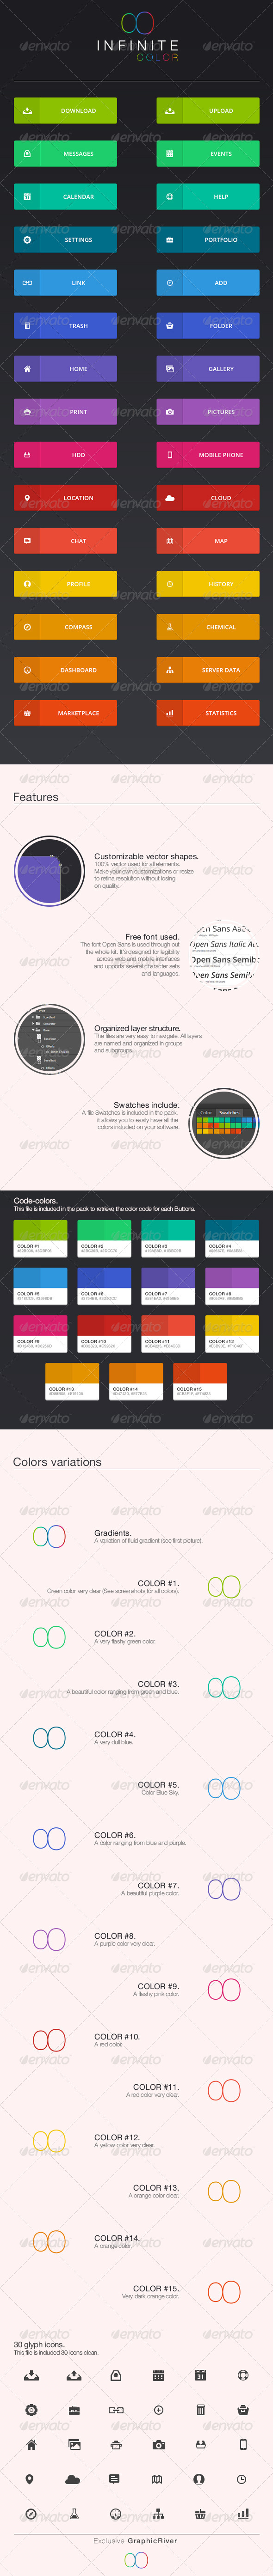 GraphicRiver Infinite Color Web Buttons 8250378